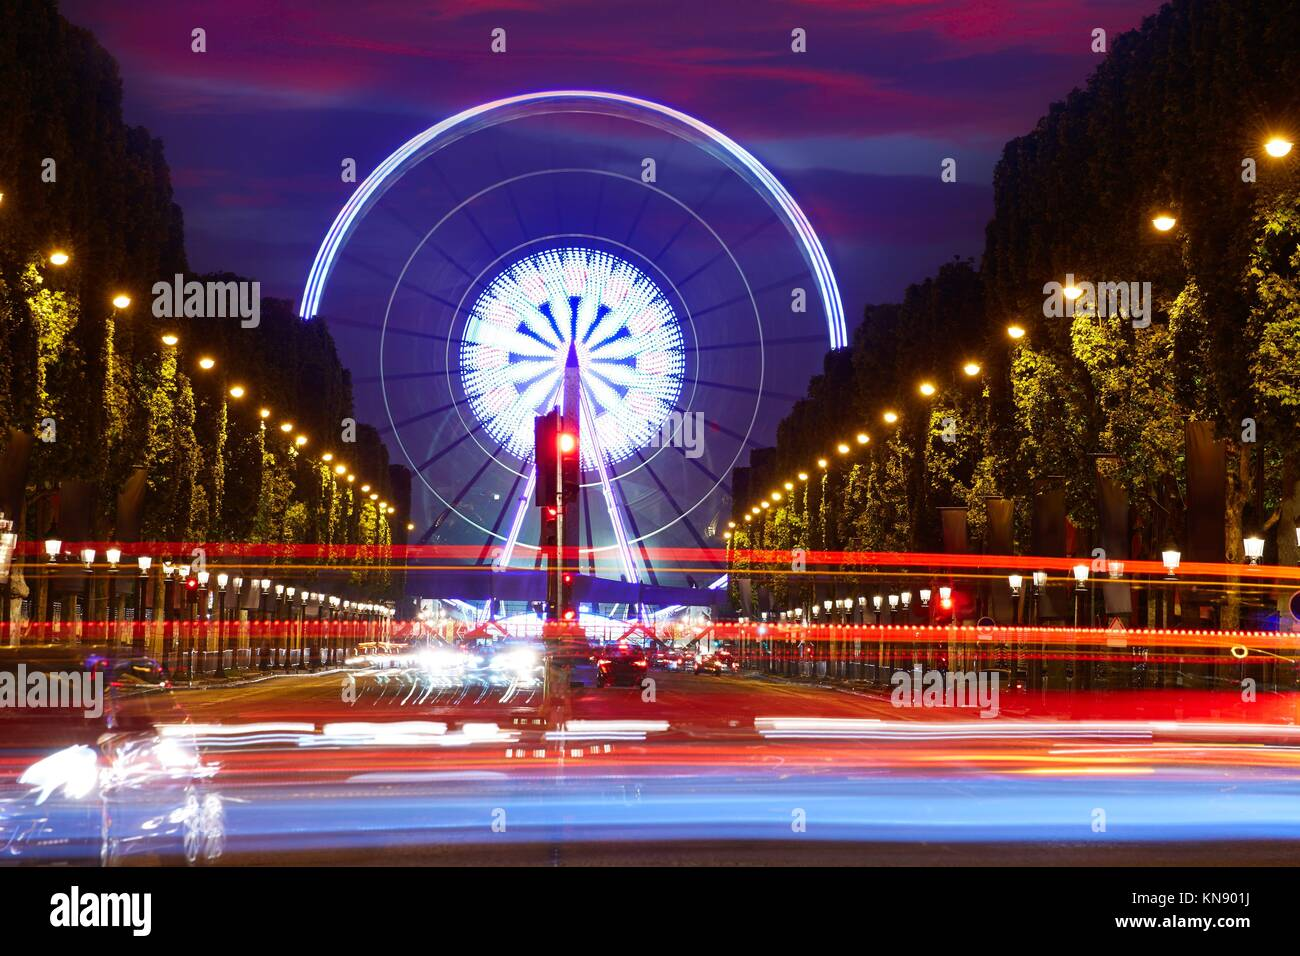 Champs Elysees in Paris and Concorde sunset at France. - Stock Image